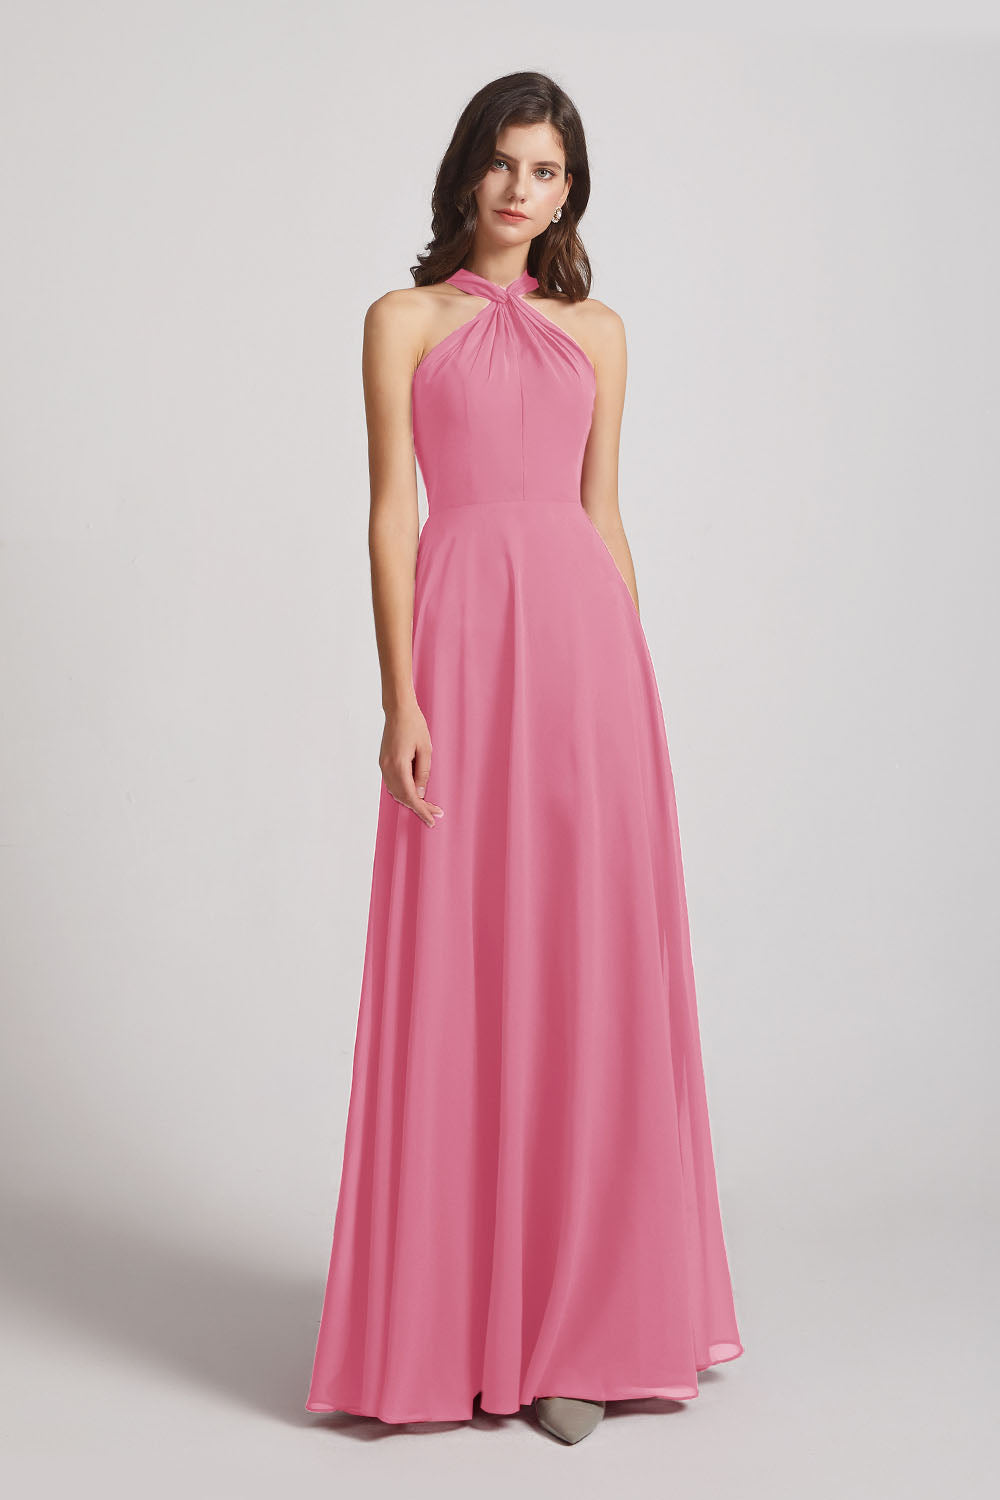 Alfa Bridal Skin Pink Floor Length Chiffon Bridesmaid Dresses with Criss Cross Neckline (AF0113)